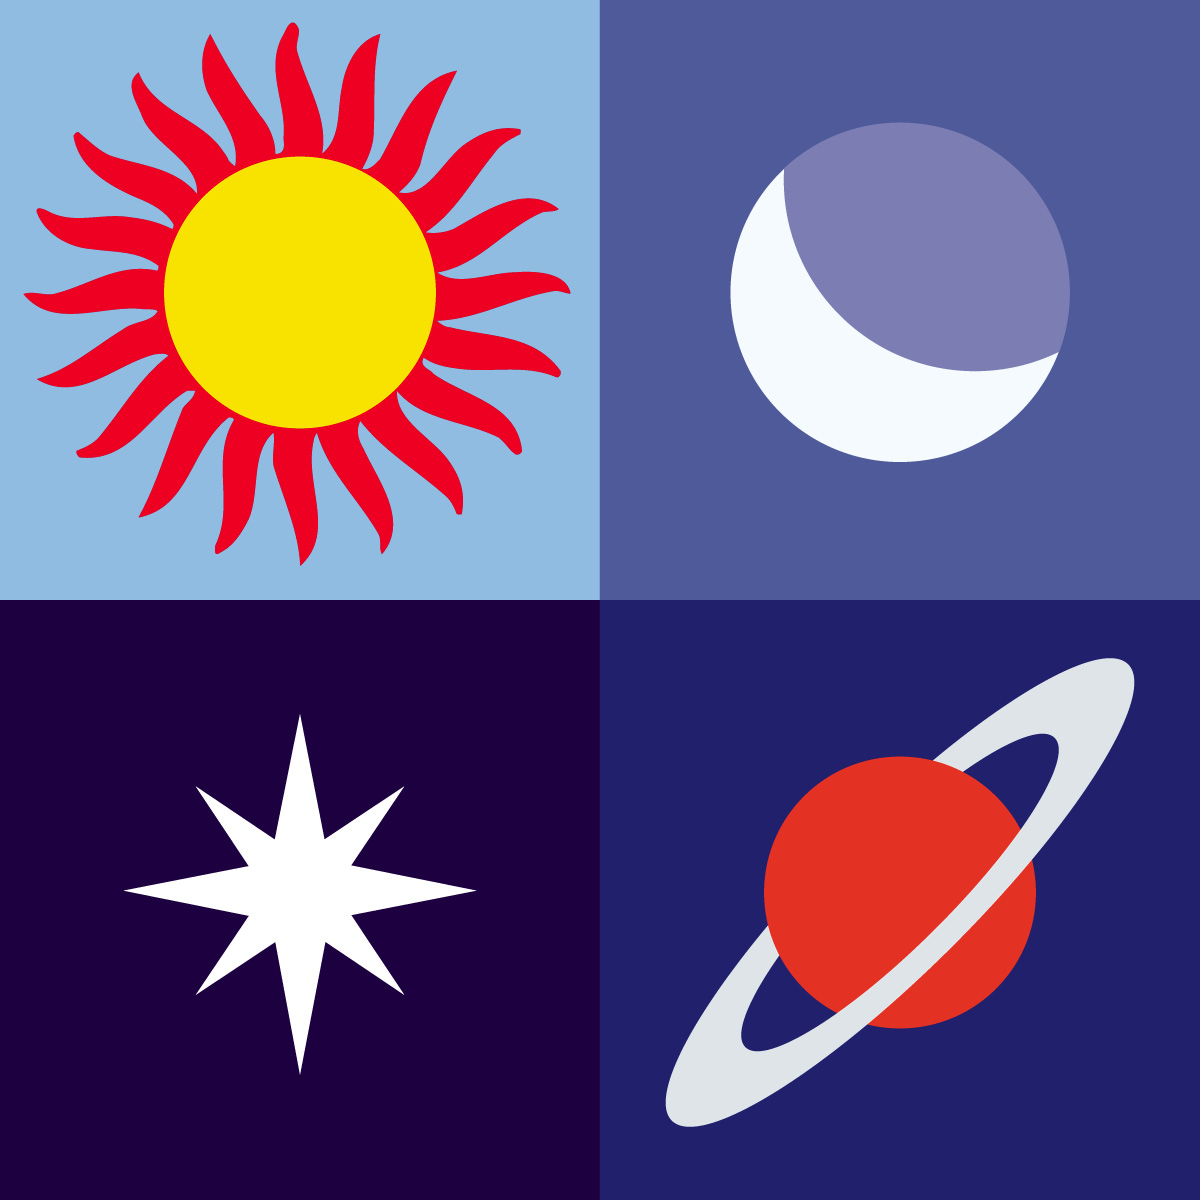 Astronomy clipart space center. Image of clip art